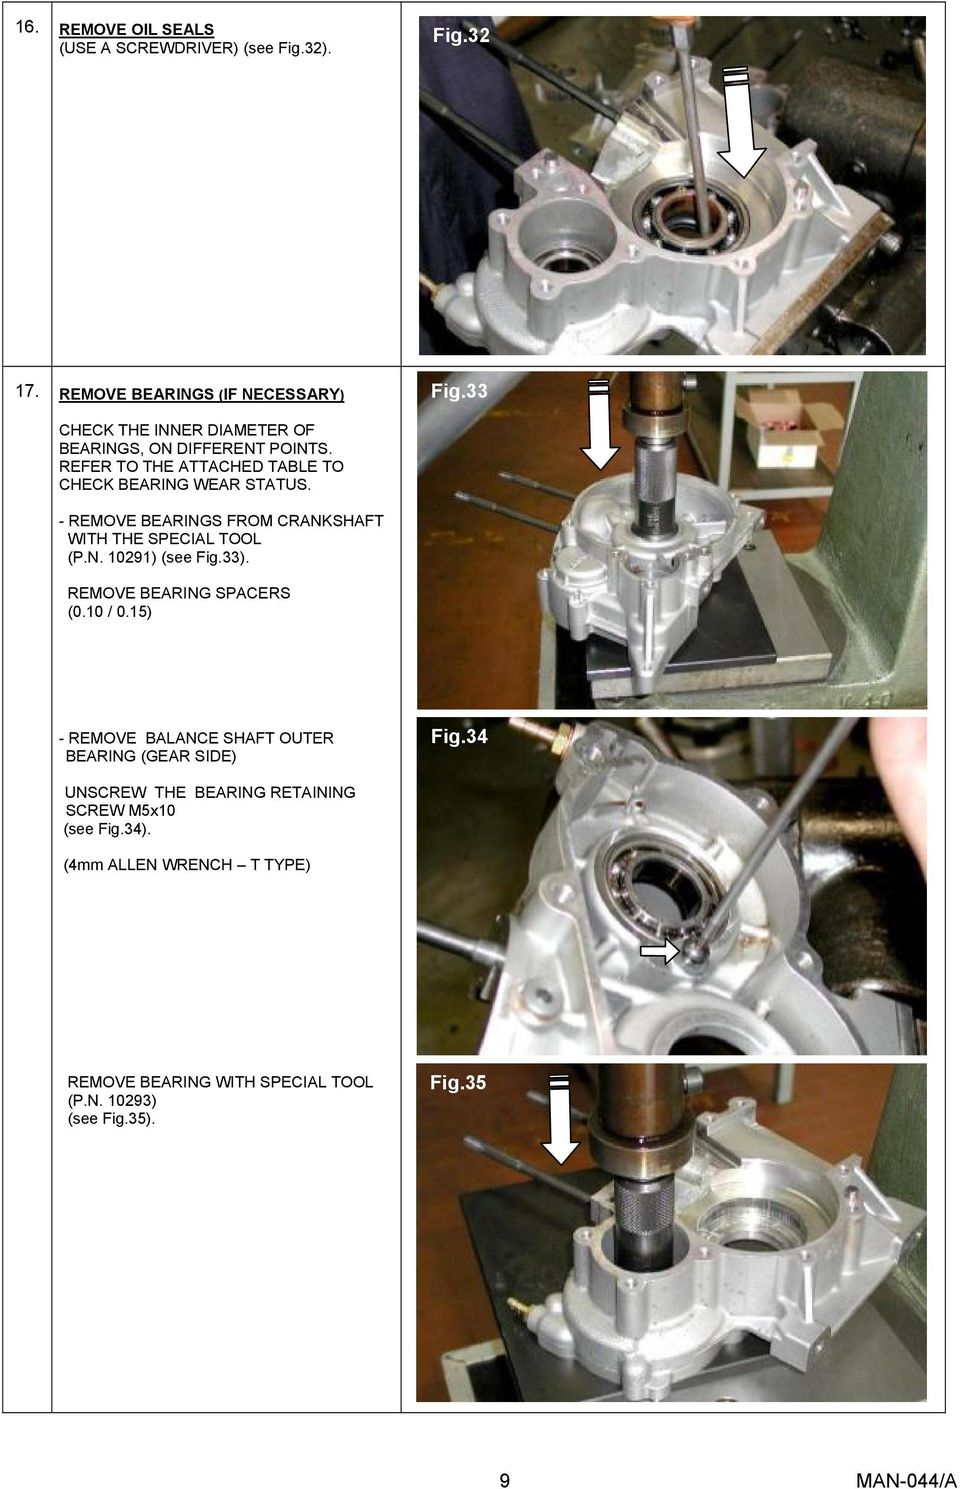 - REMOVE BEARINGS FROM CRANKSHAFT WITH THE SPECIAL TOOL (P.N. 10291) (see Fig.33). REMOVE BEARING SPACERS (0.10 / 0.